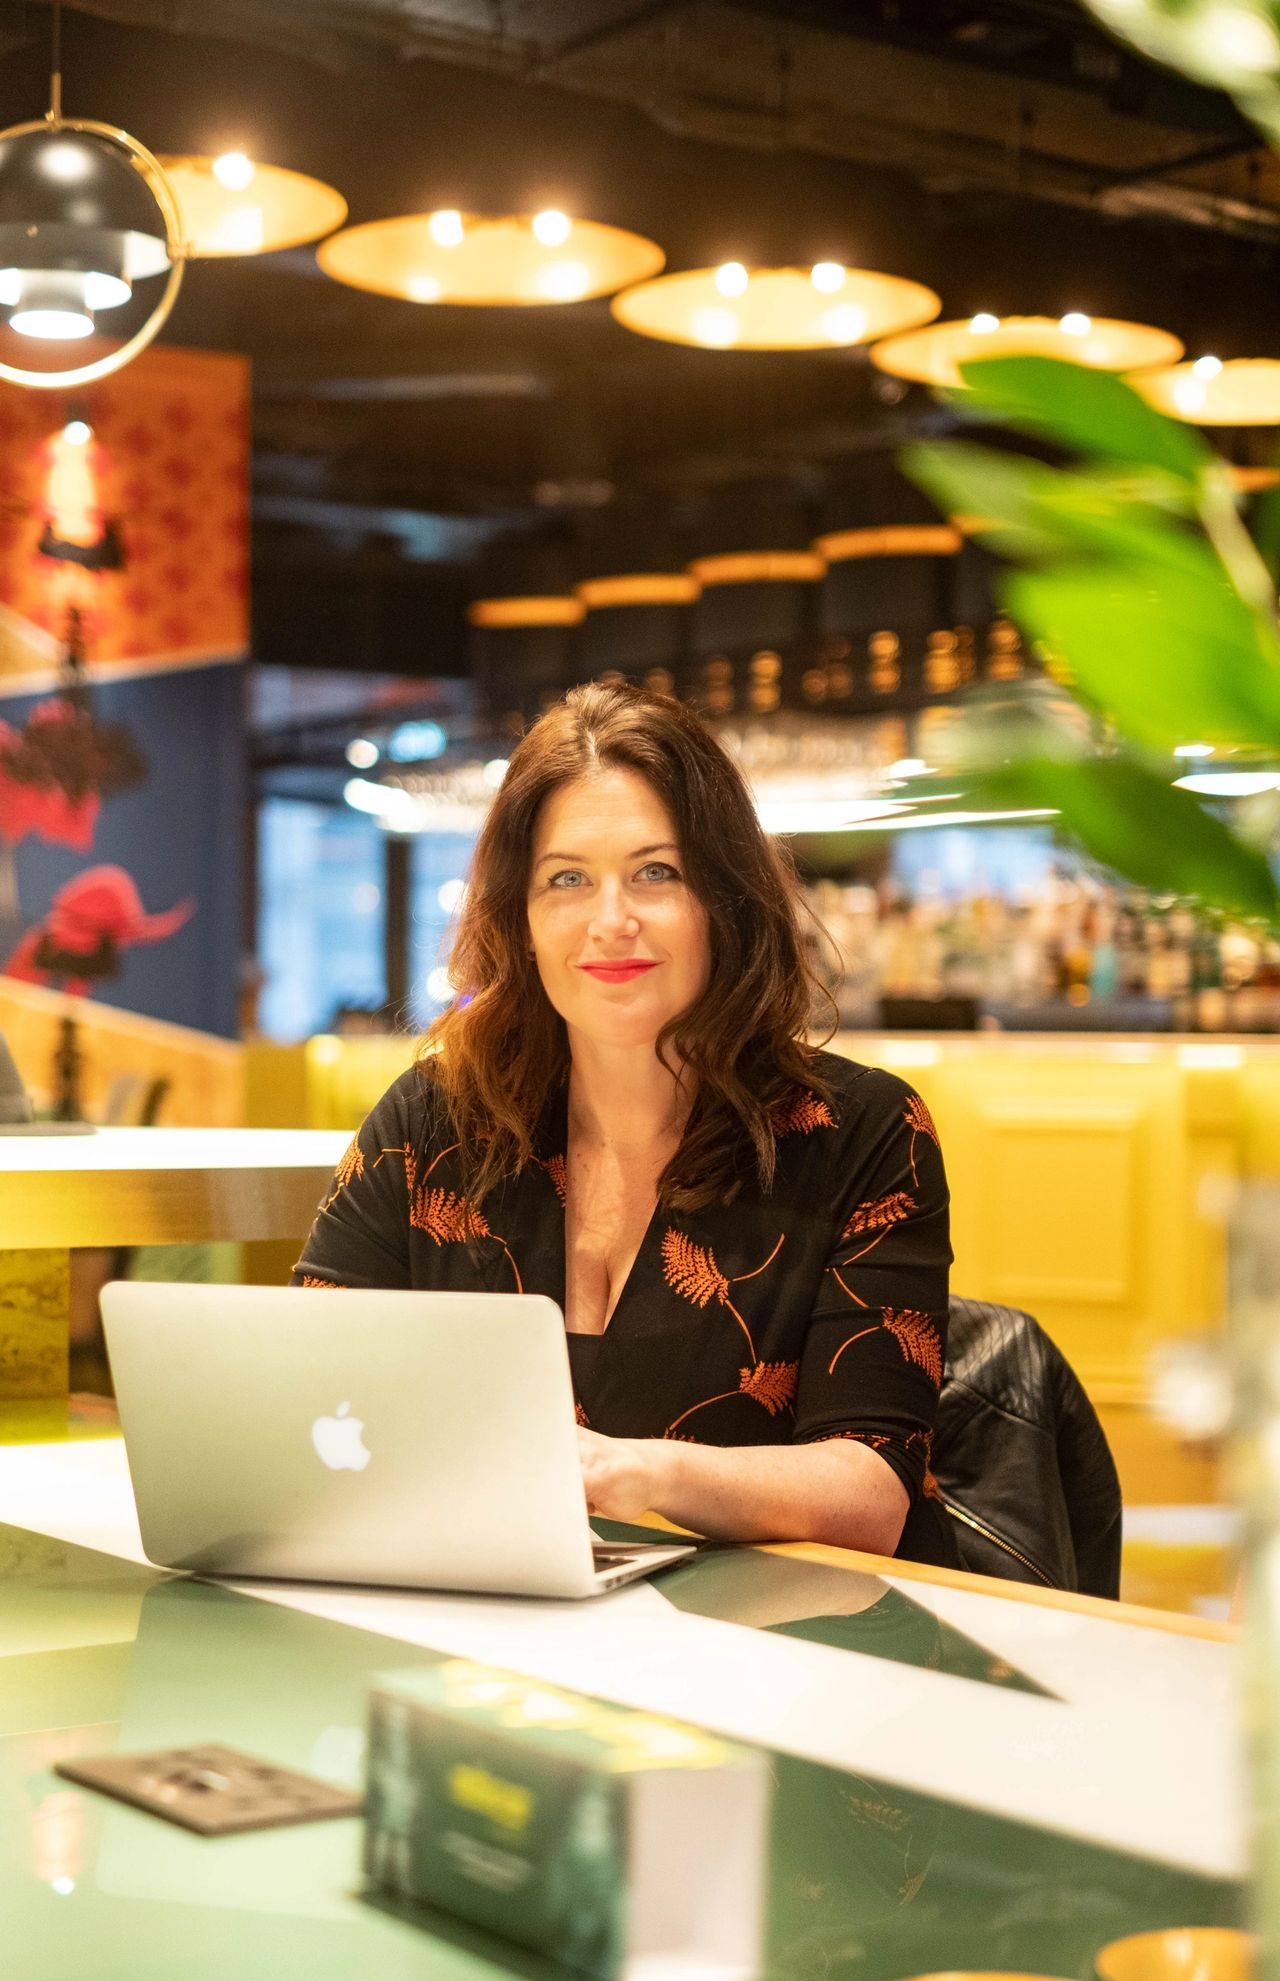 IWD Inspirational Female Founders Spotlight: Claire Winter